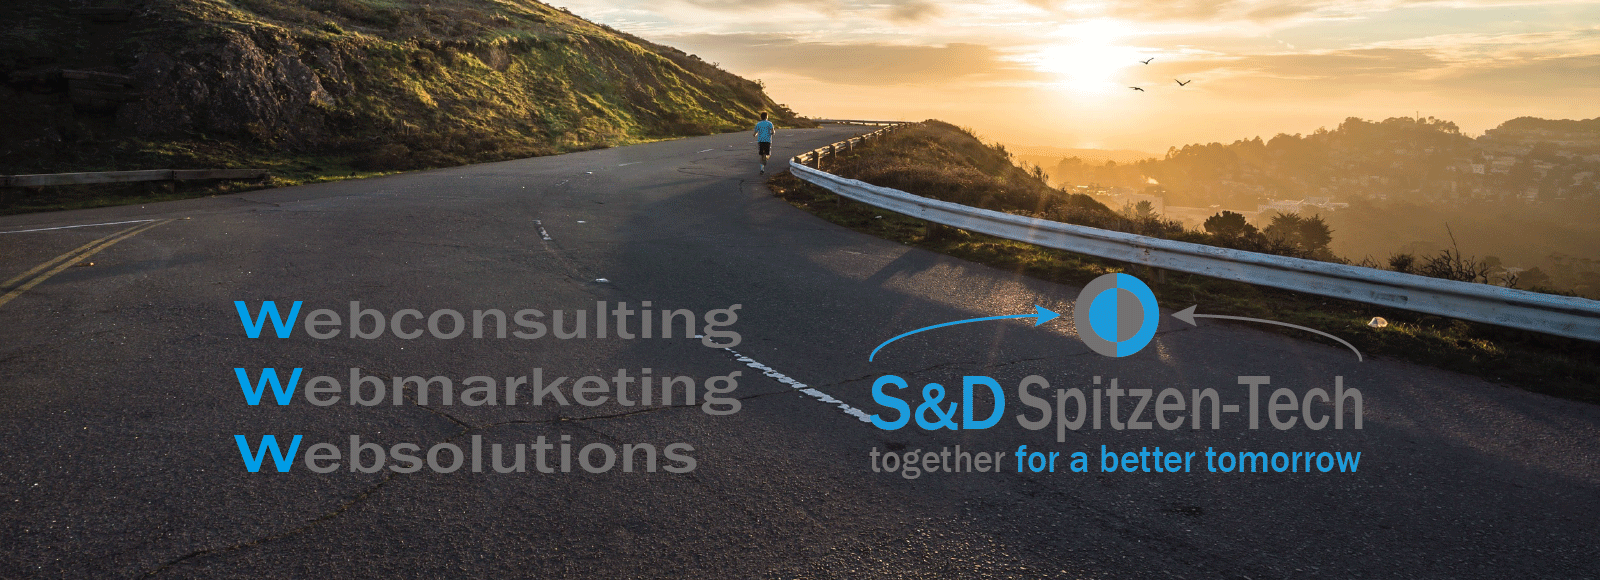 S&D Spitzen-Tech, Webconsulting, Webmarketing, Websolutions